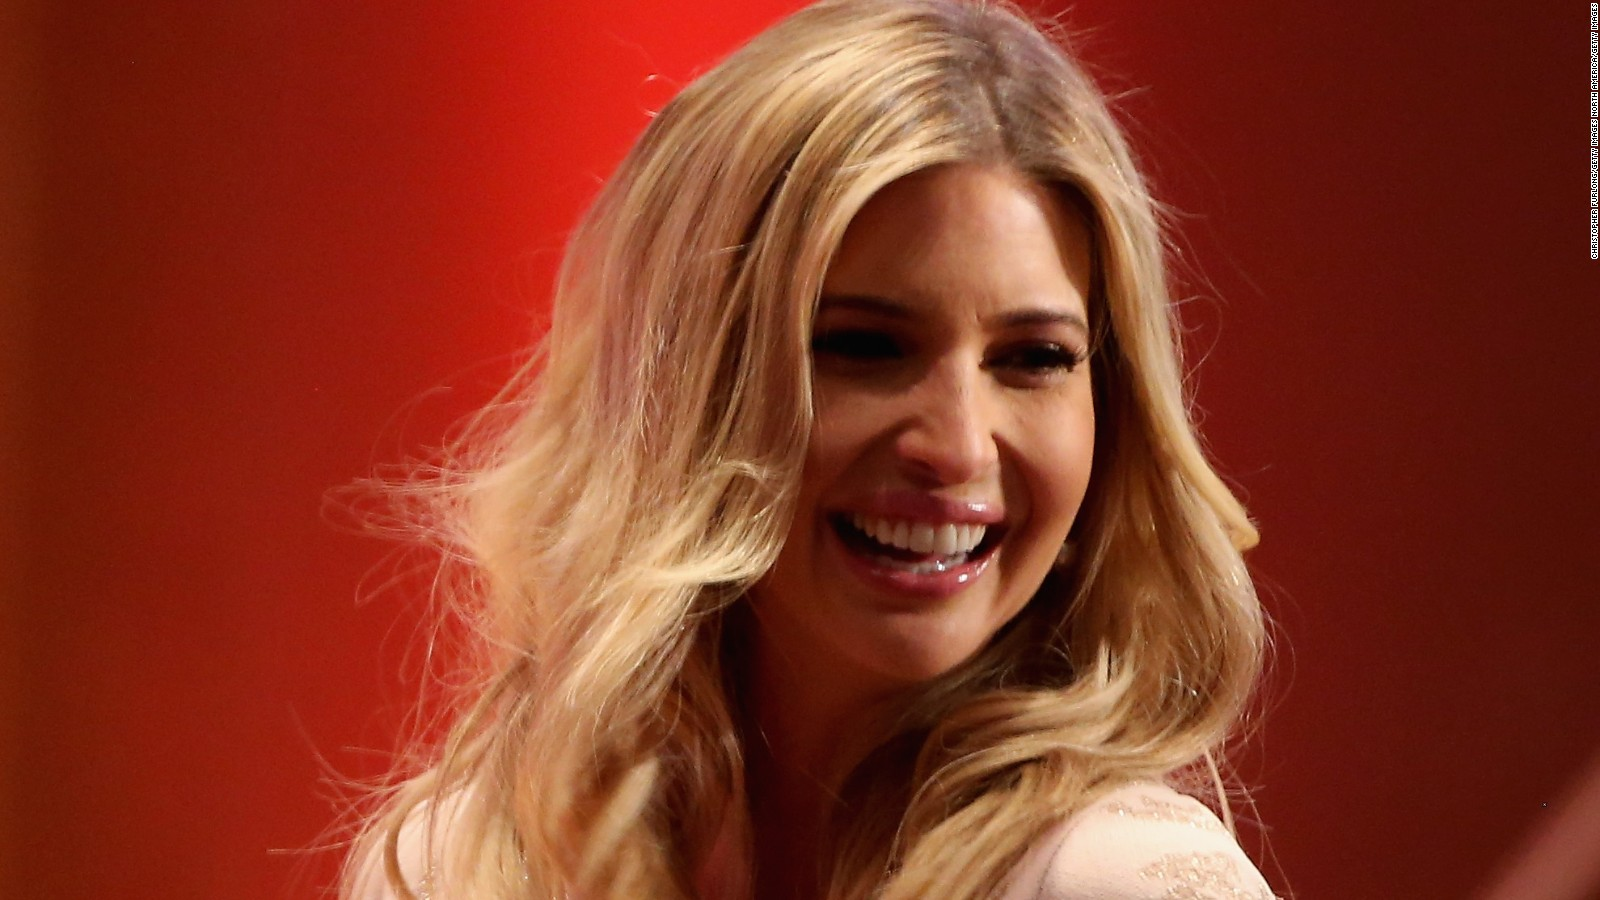 Ivanka Trump Stepping Into Powerful Role As First Daughter